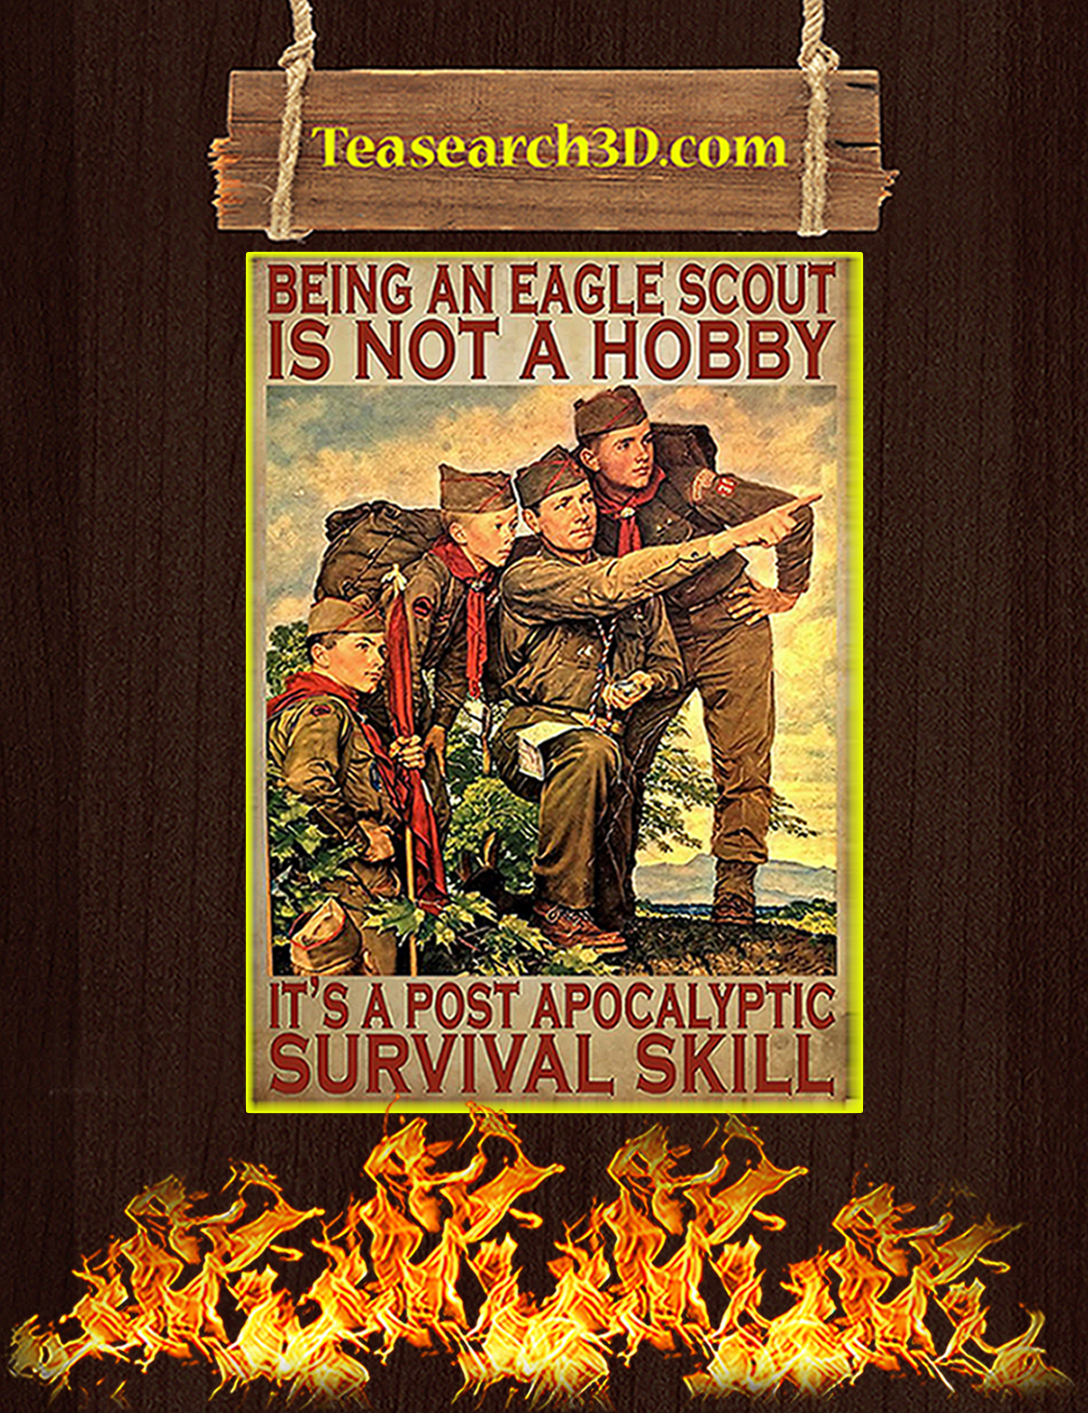 Being an eagle scout is not a hobby poster A2